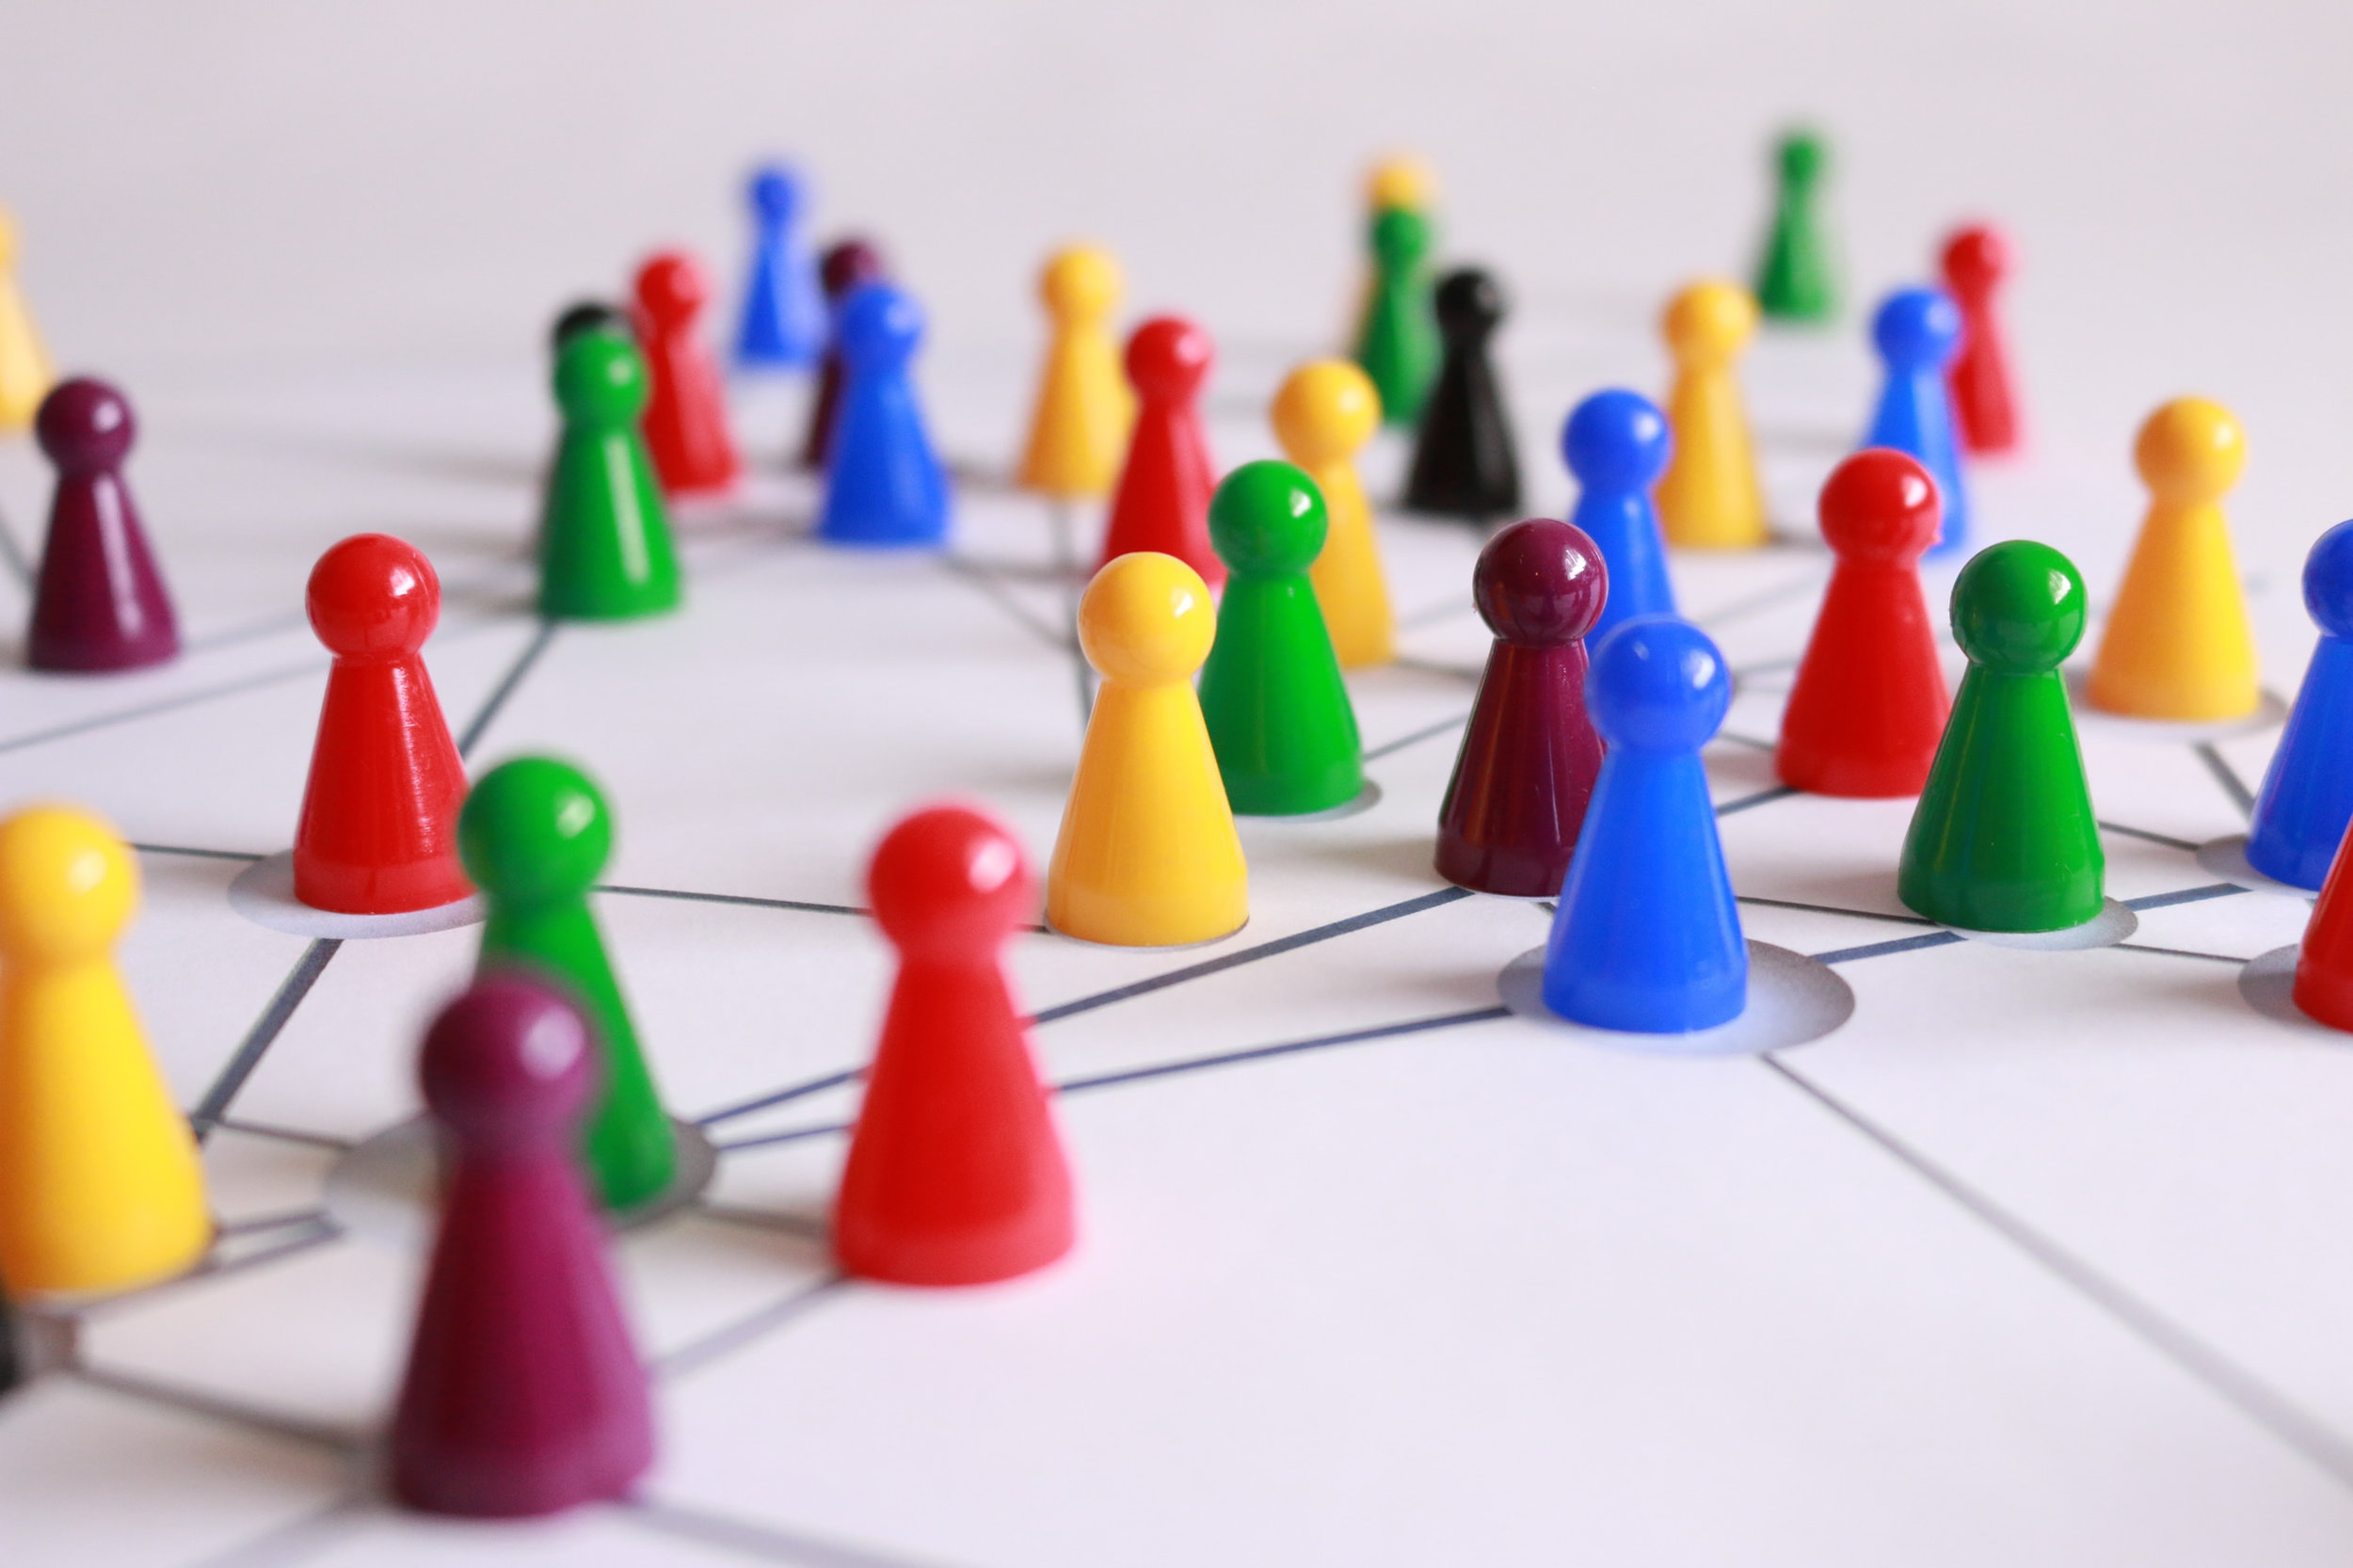 game-pieces-colorful.jpg